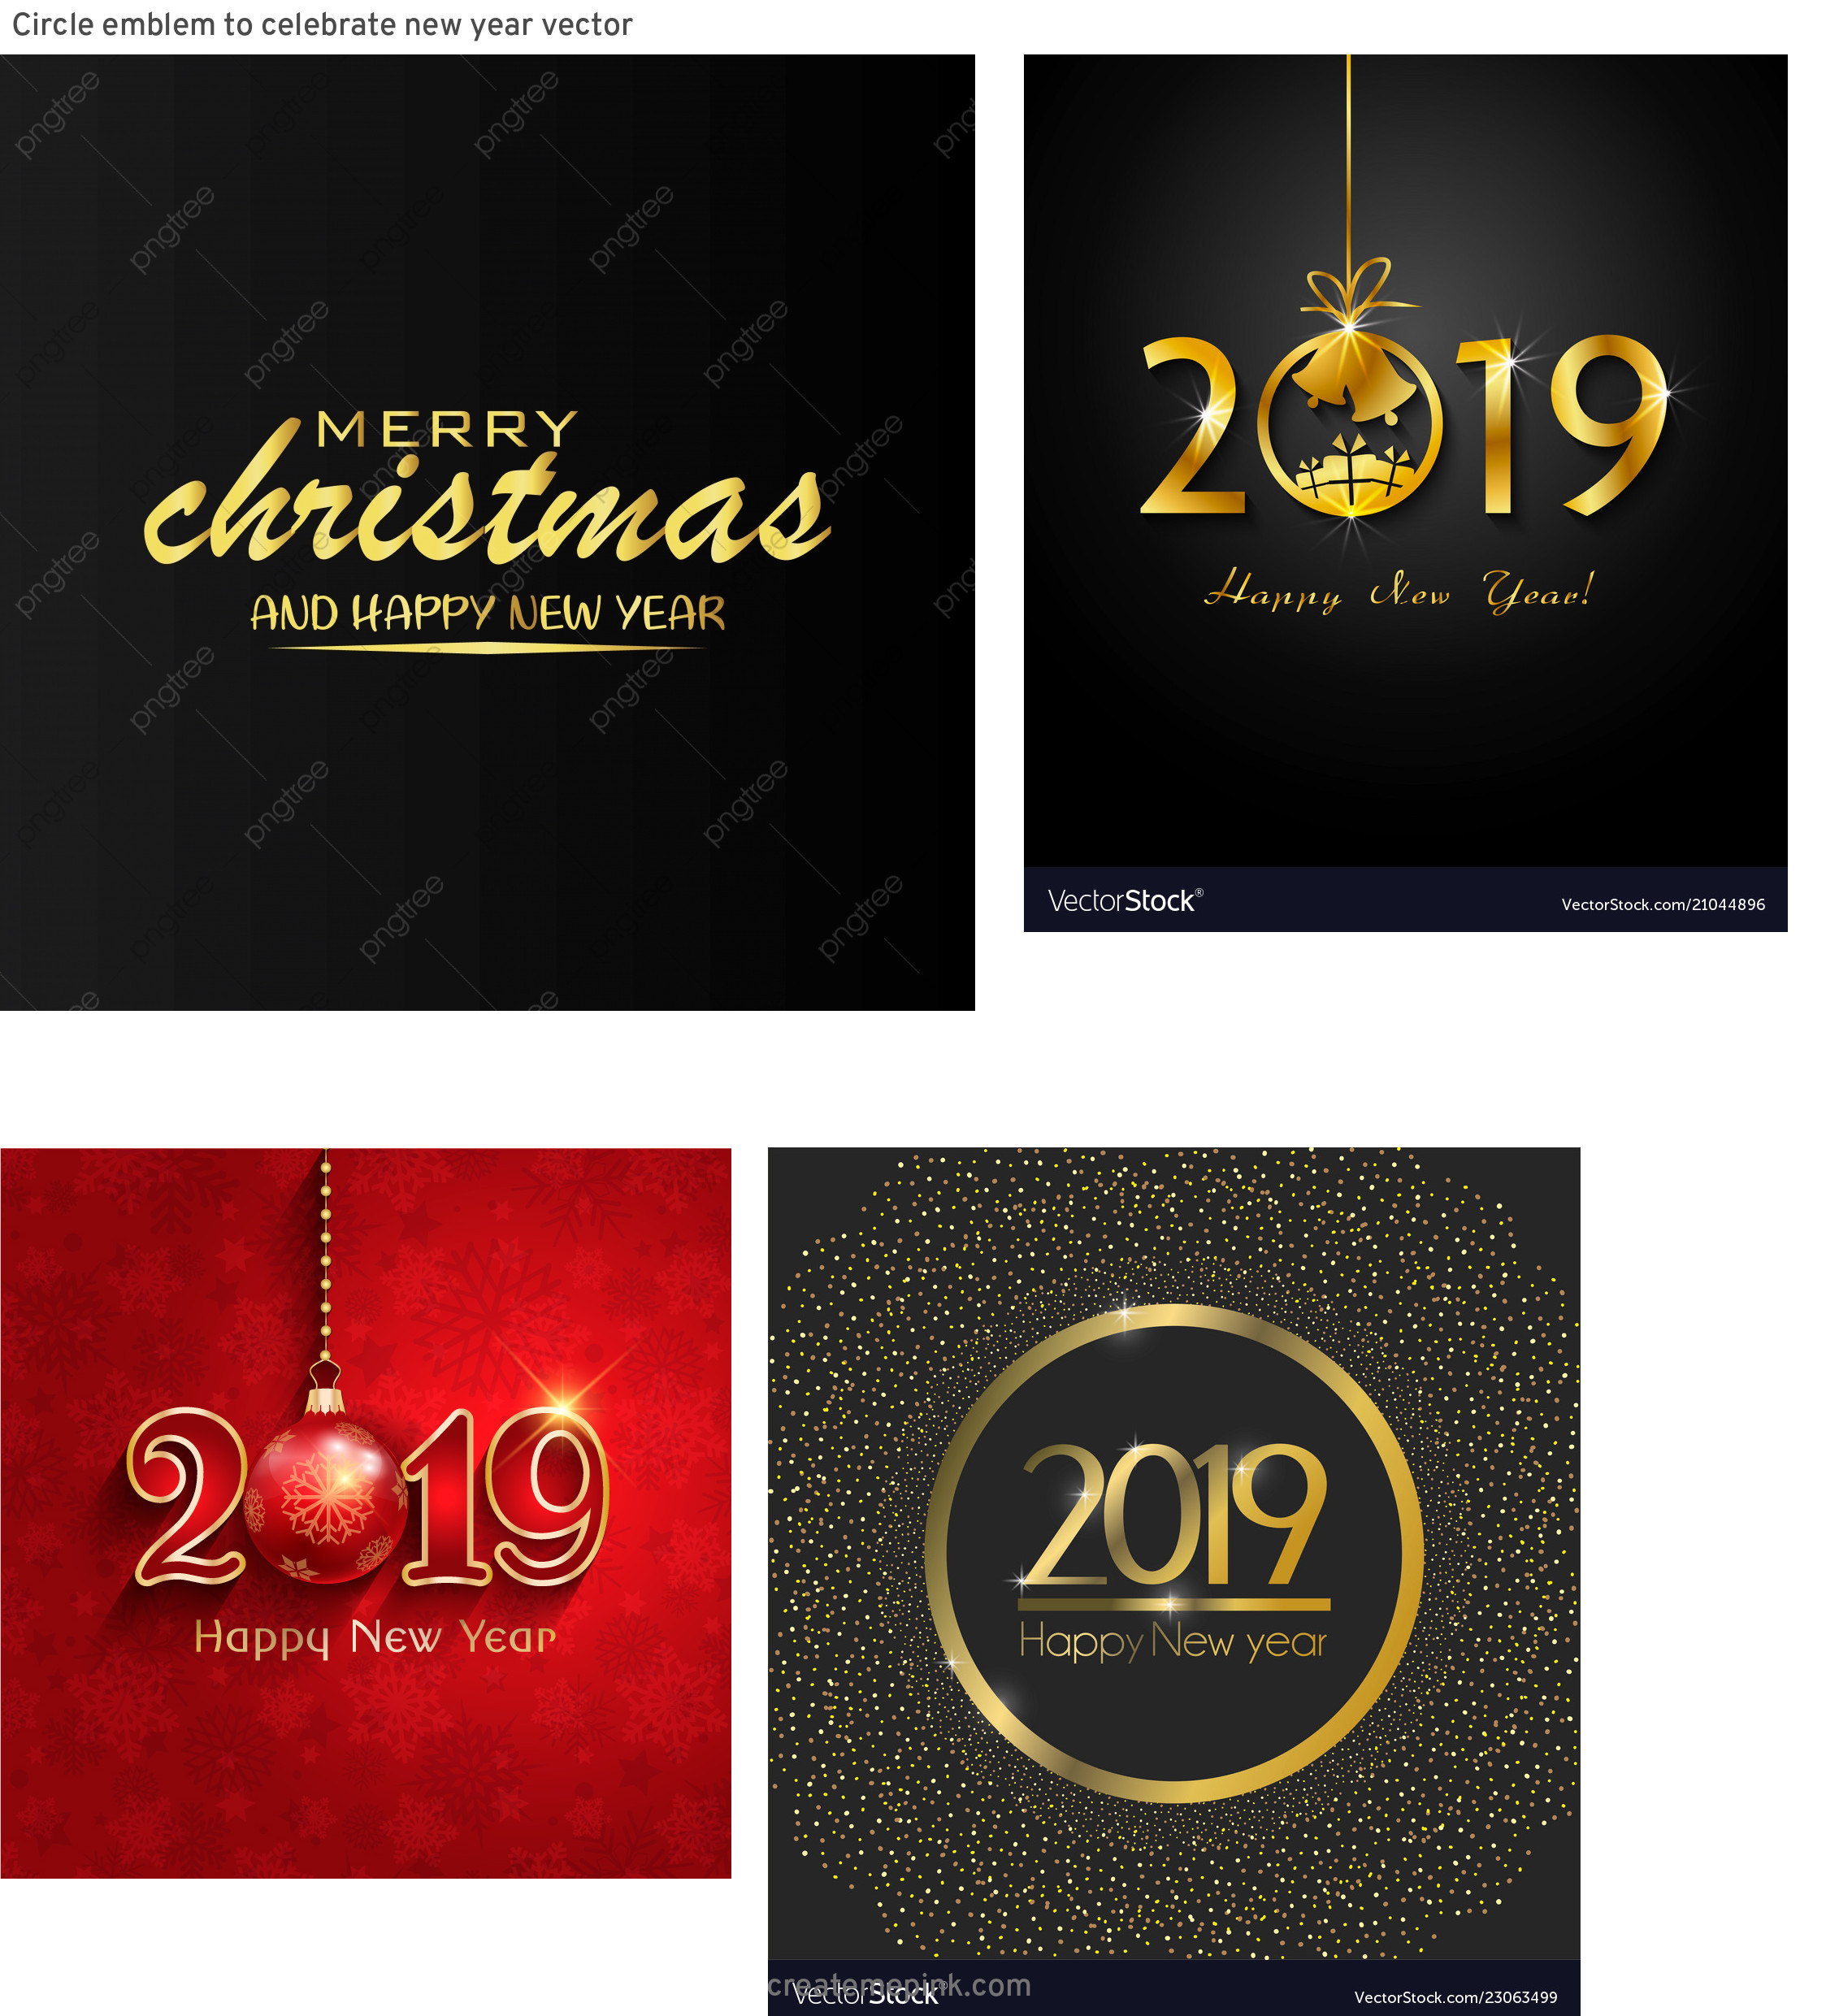 Free New Year Vector: Circle Emblem To Celebrate New Year Vector